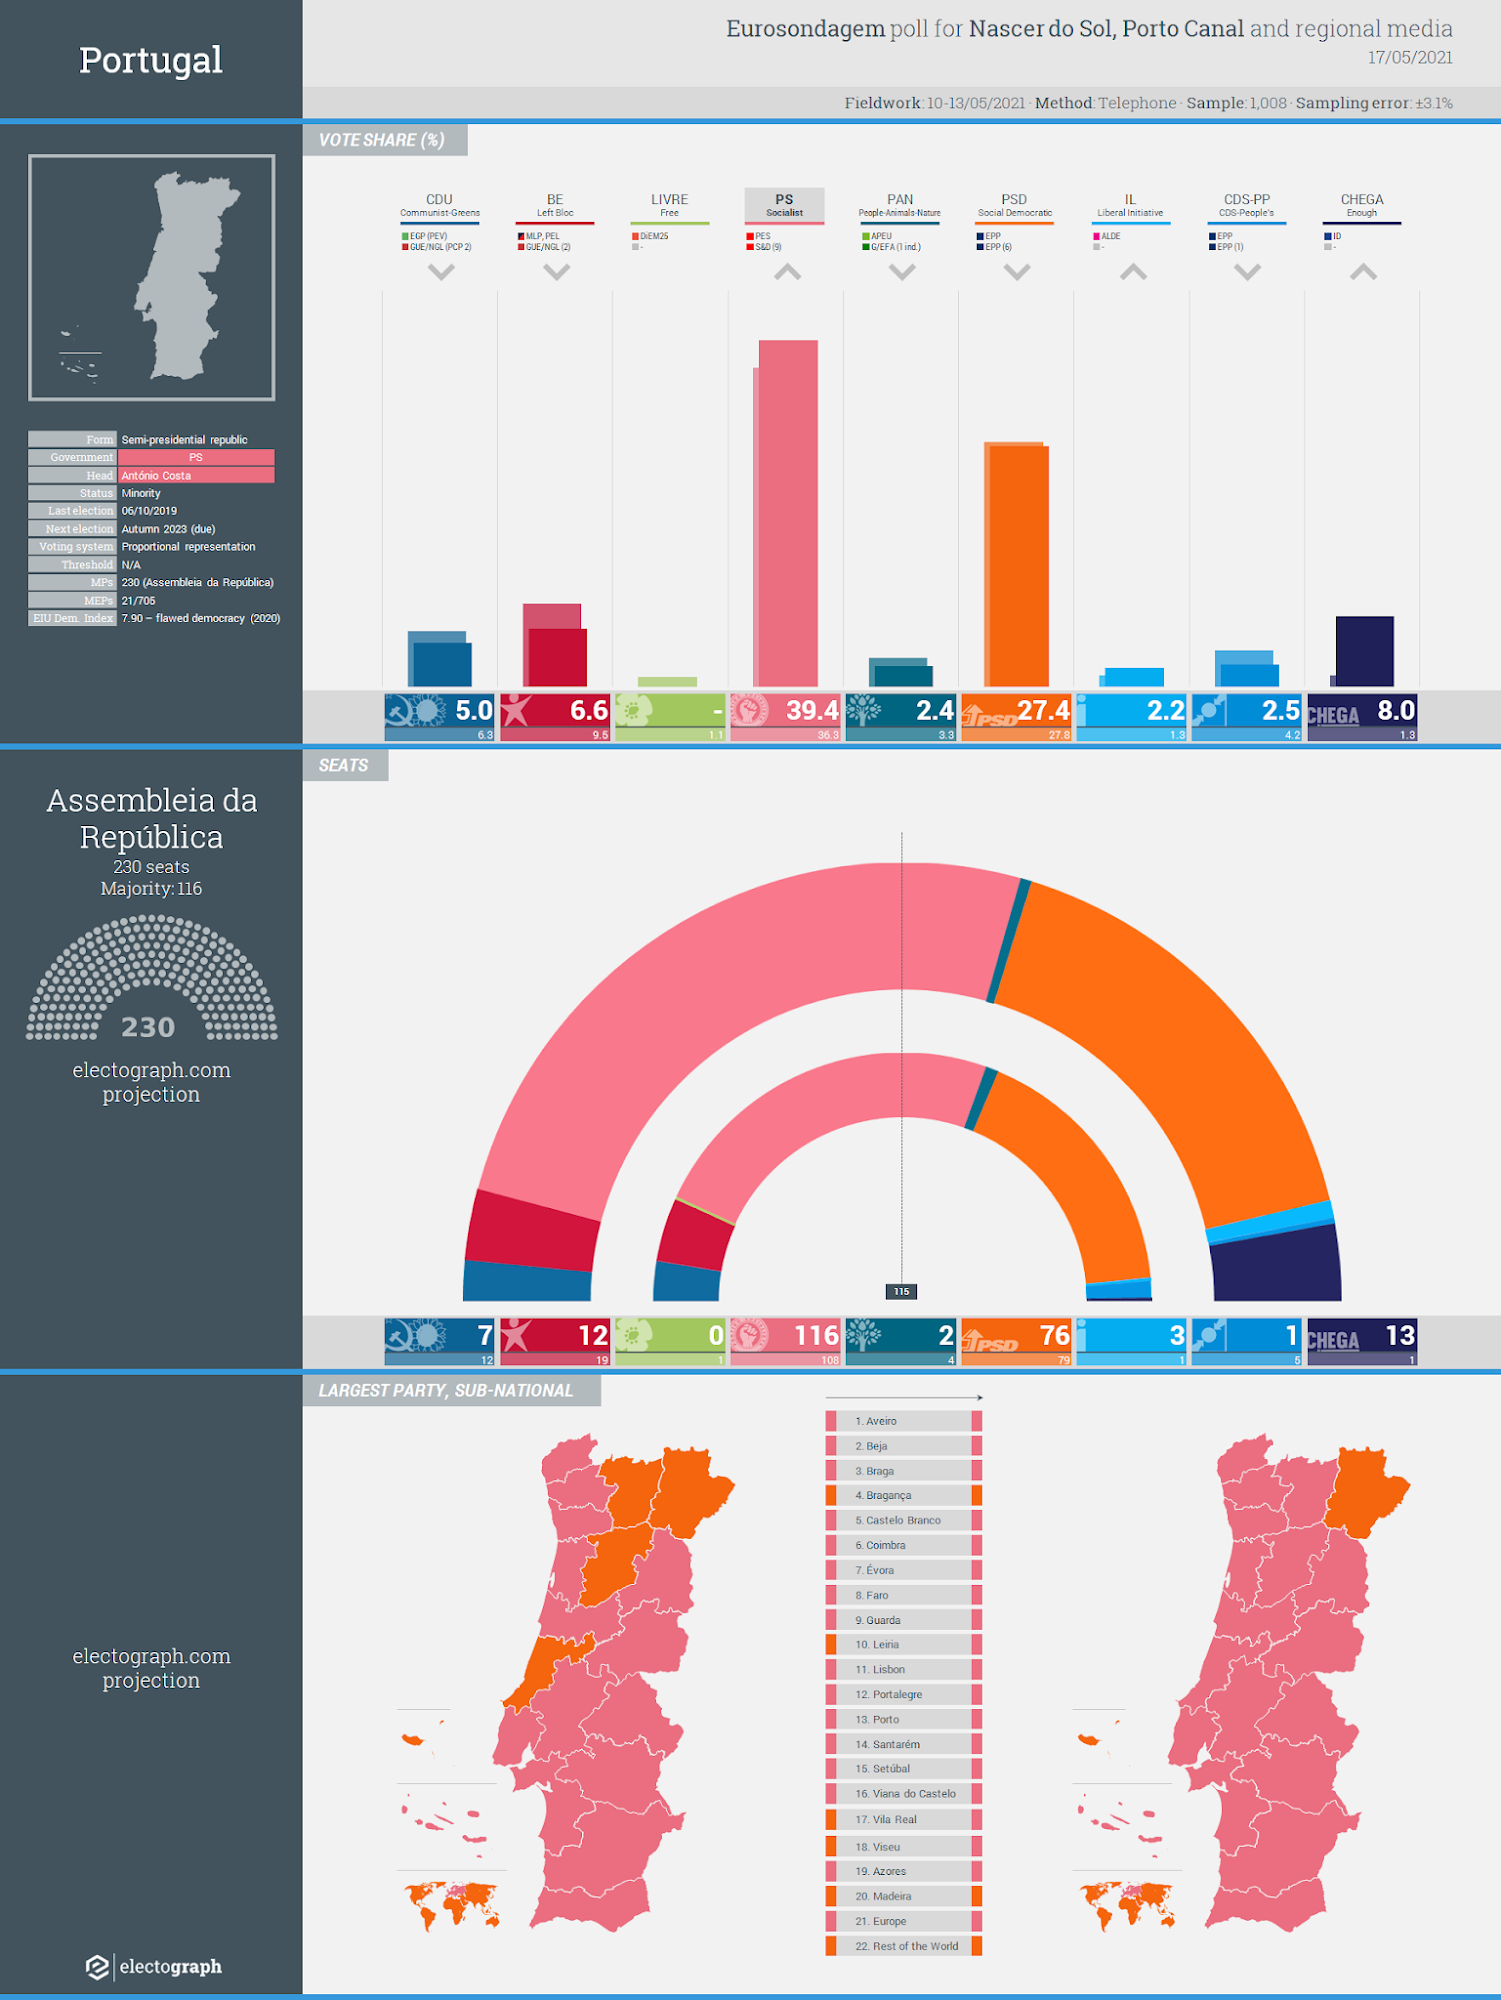 PORTUGAL: Eurosondagem poll chart for Sol and Porto Canal, 17 May 2021